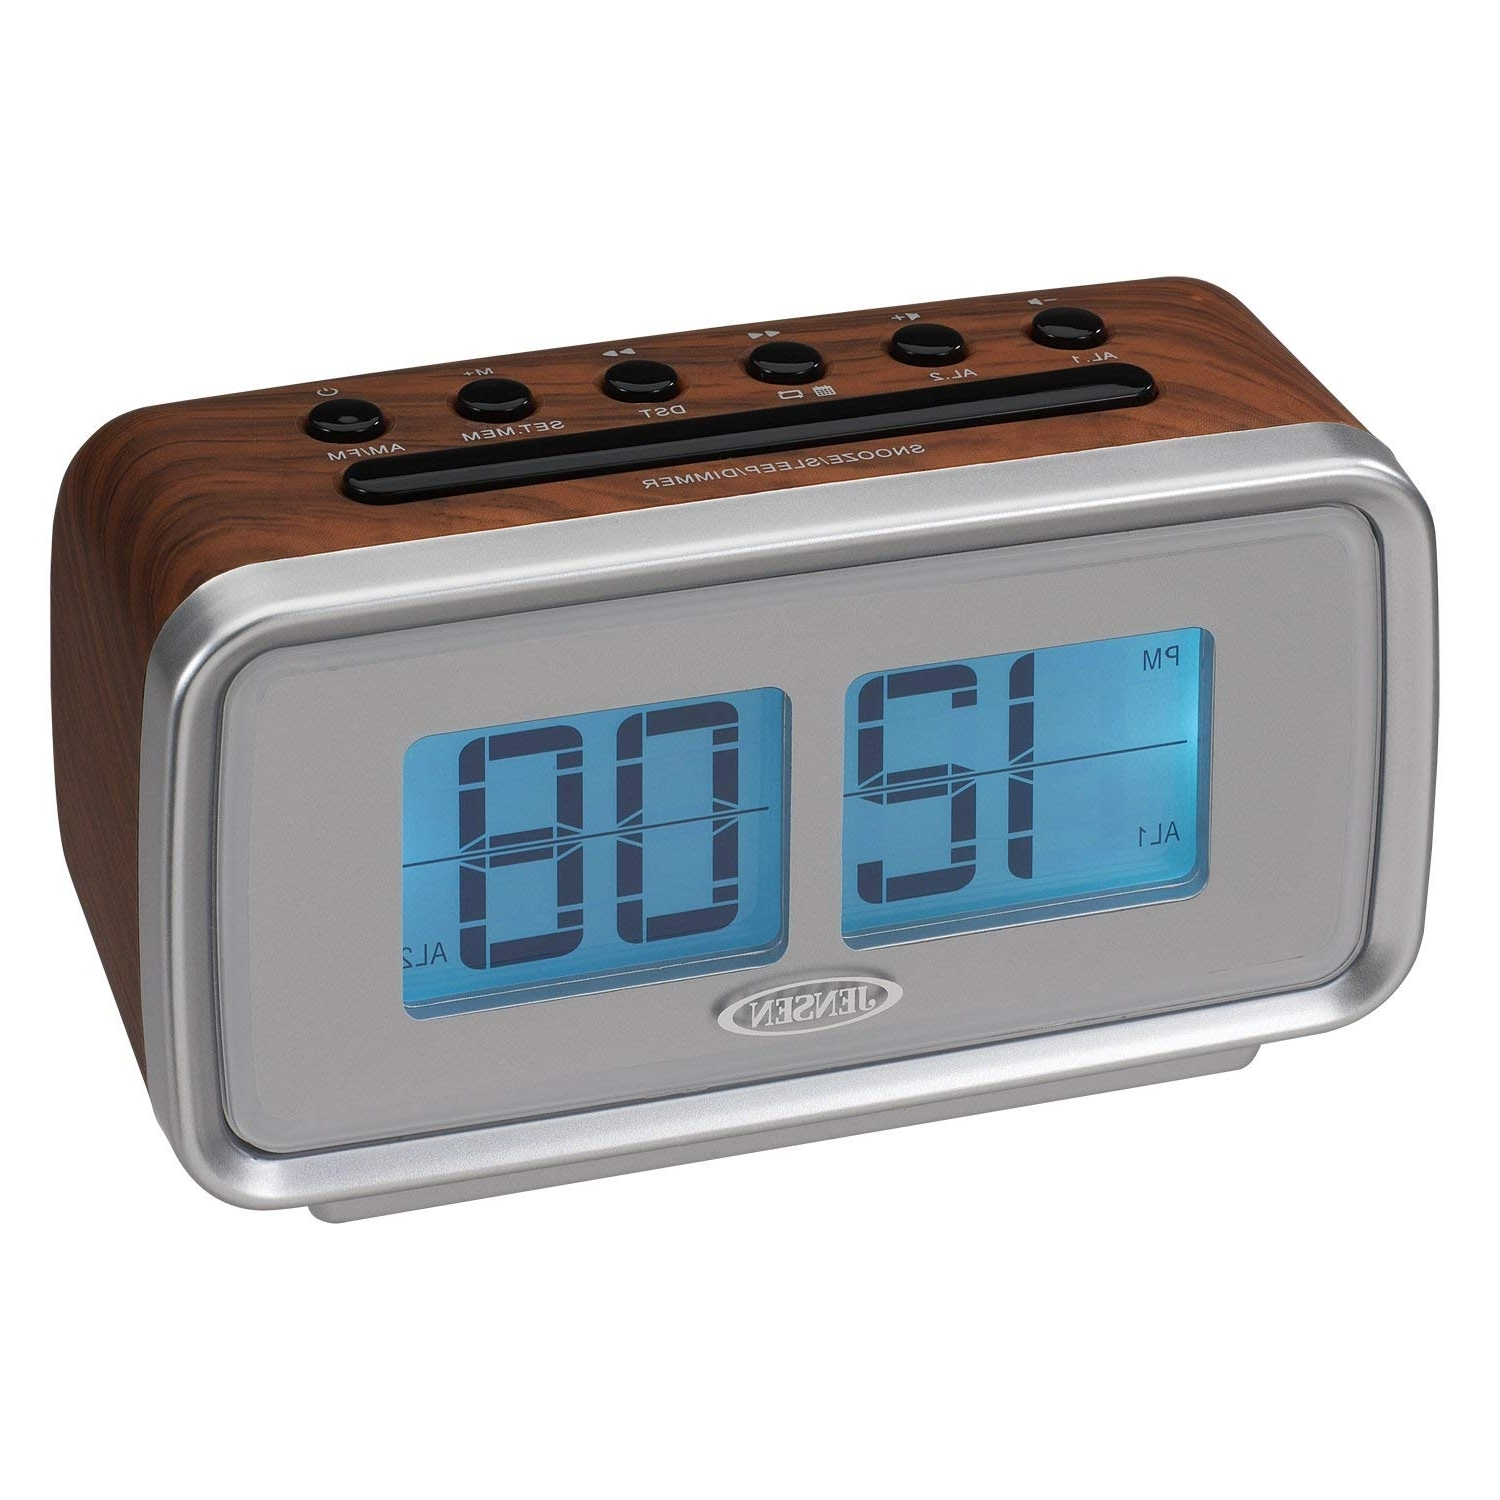 Amazon: Jensen Jcr 232 Am/fm Dual Alarm Clock With Digital Retro Pertaining To Well Known Jensen 5 Piece Counter Sets (View 16 of 25)